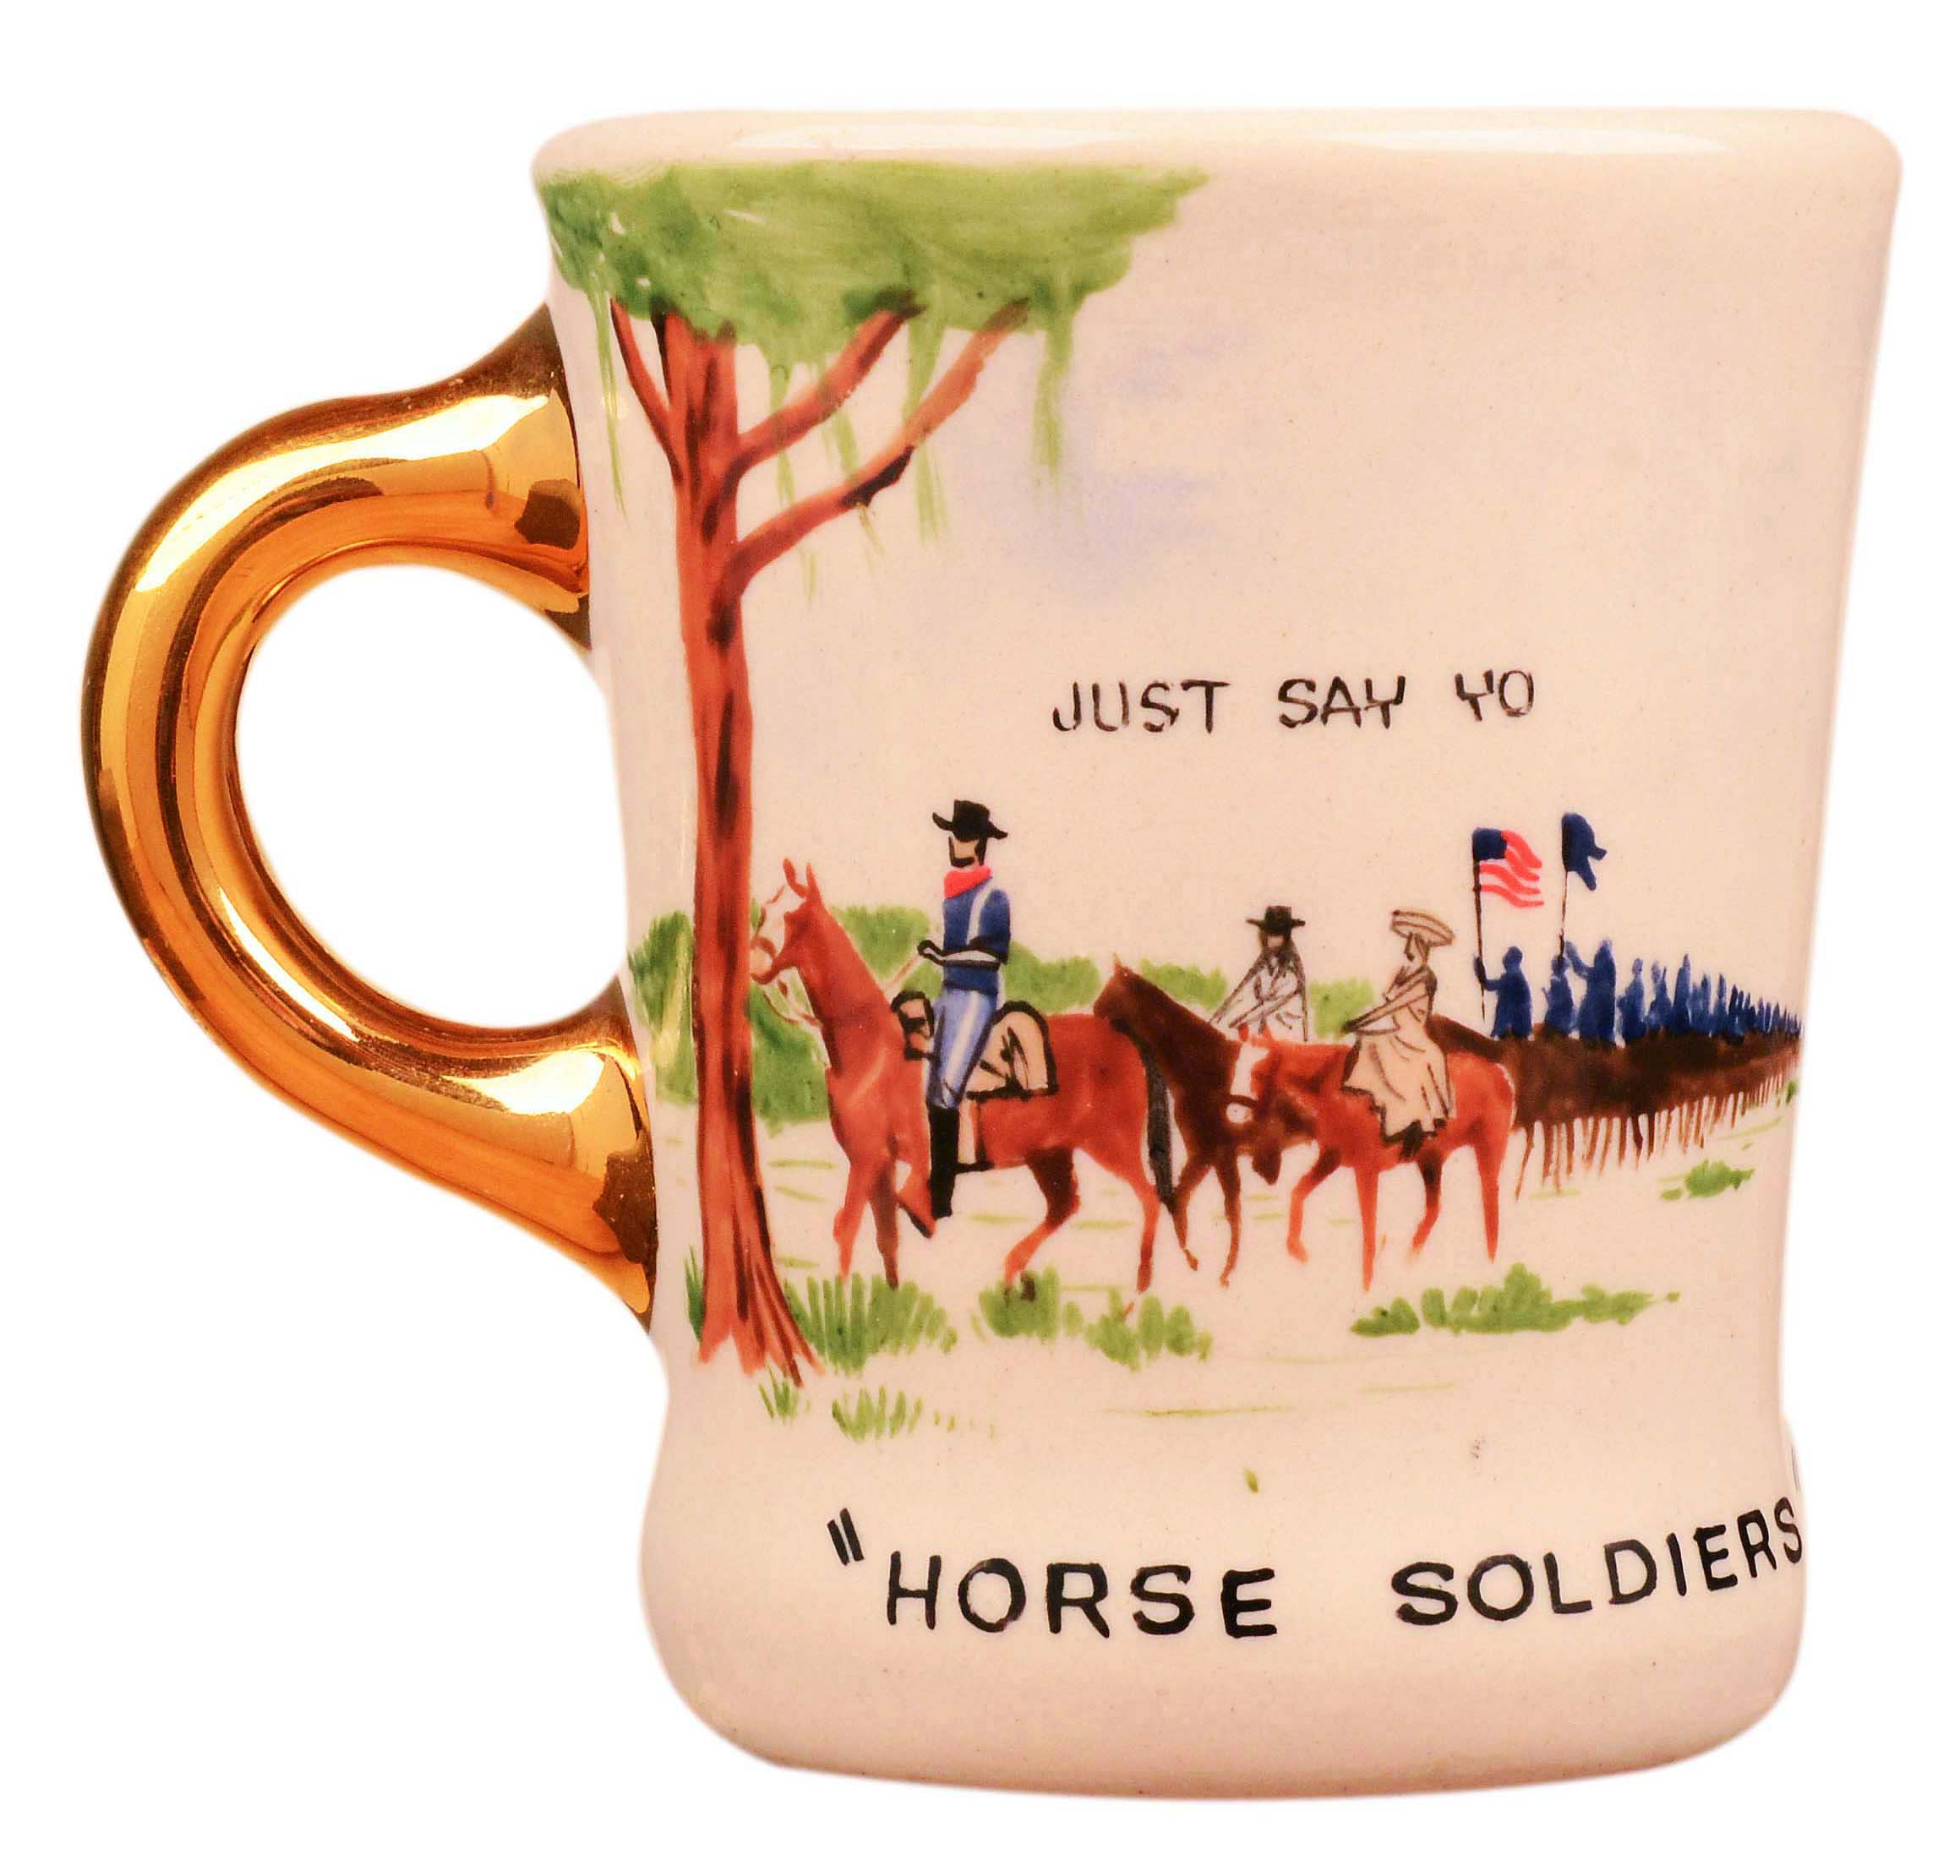 John Wayne mug for the 1959 movie The Horse Soldiers, front.